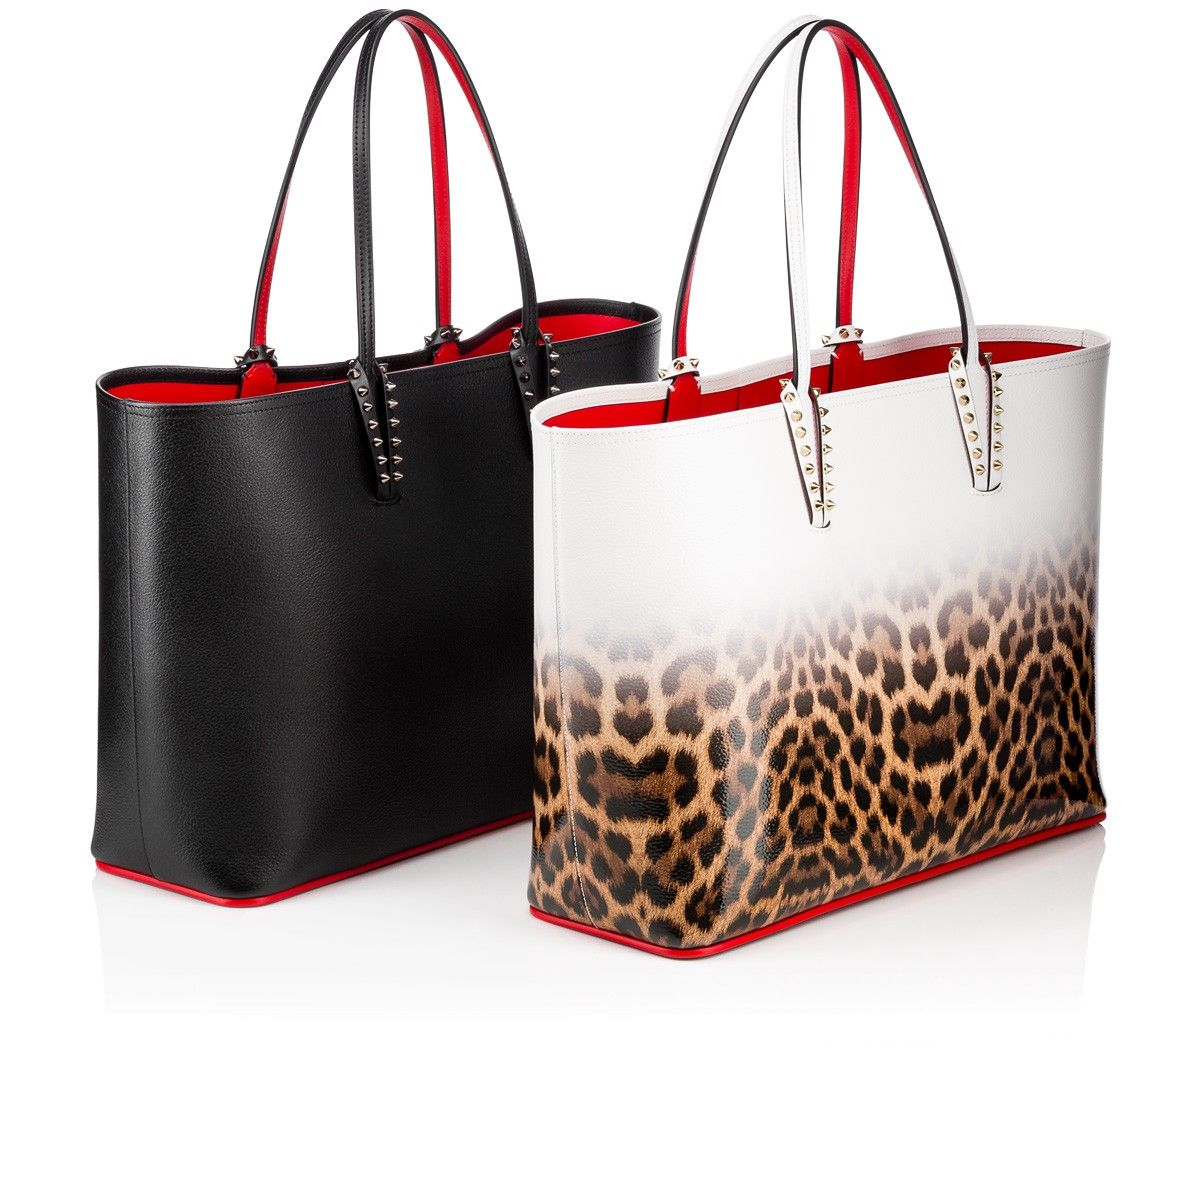 Cabata Studded Printed Leather Tote - Red Christian Louboutin